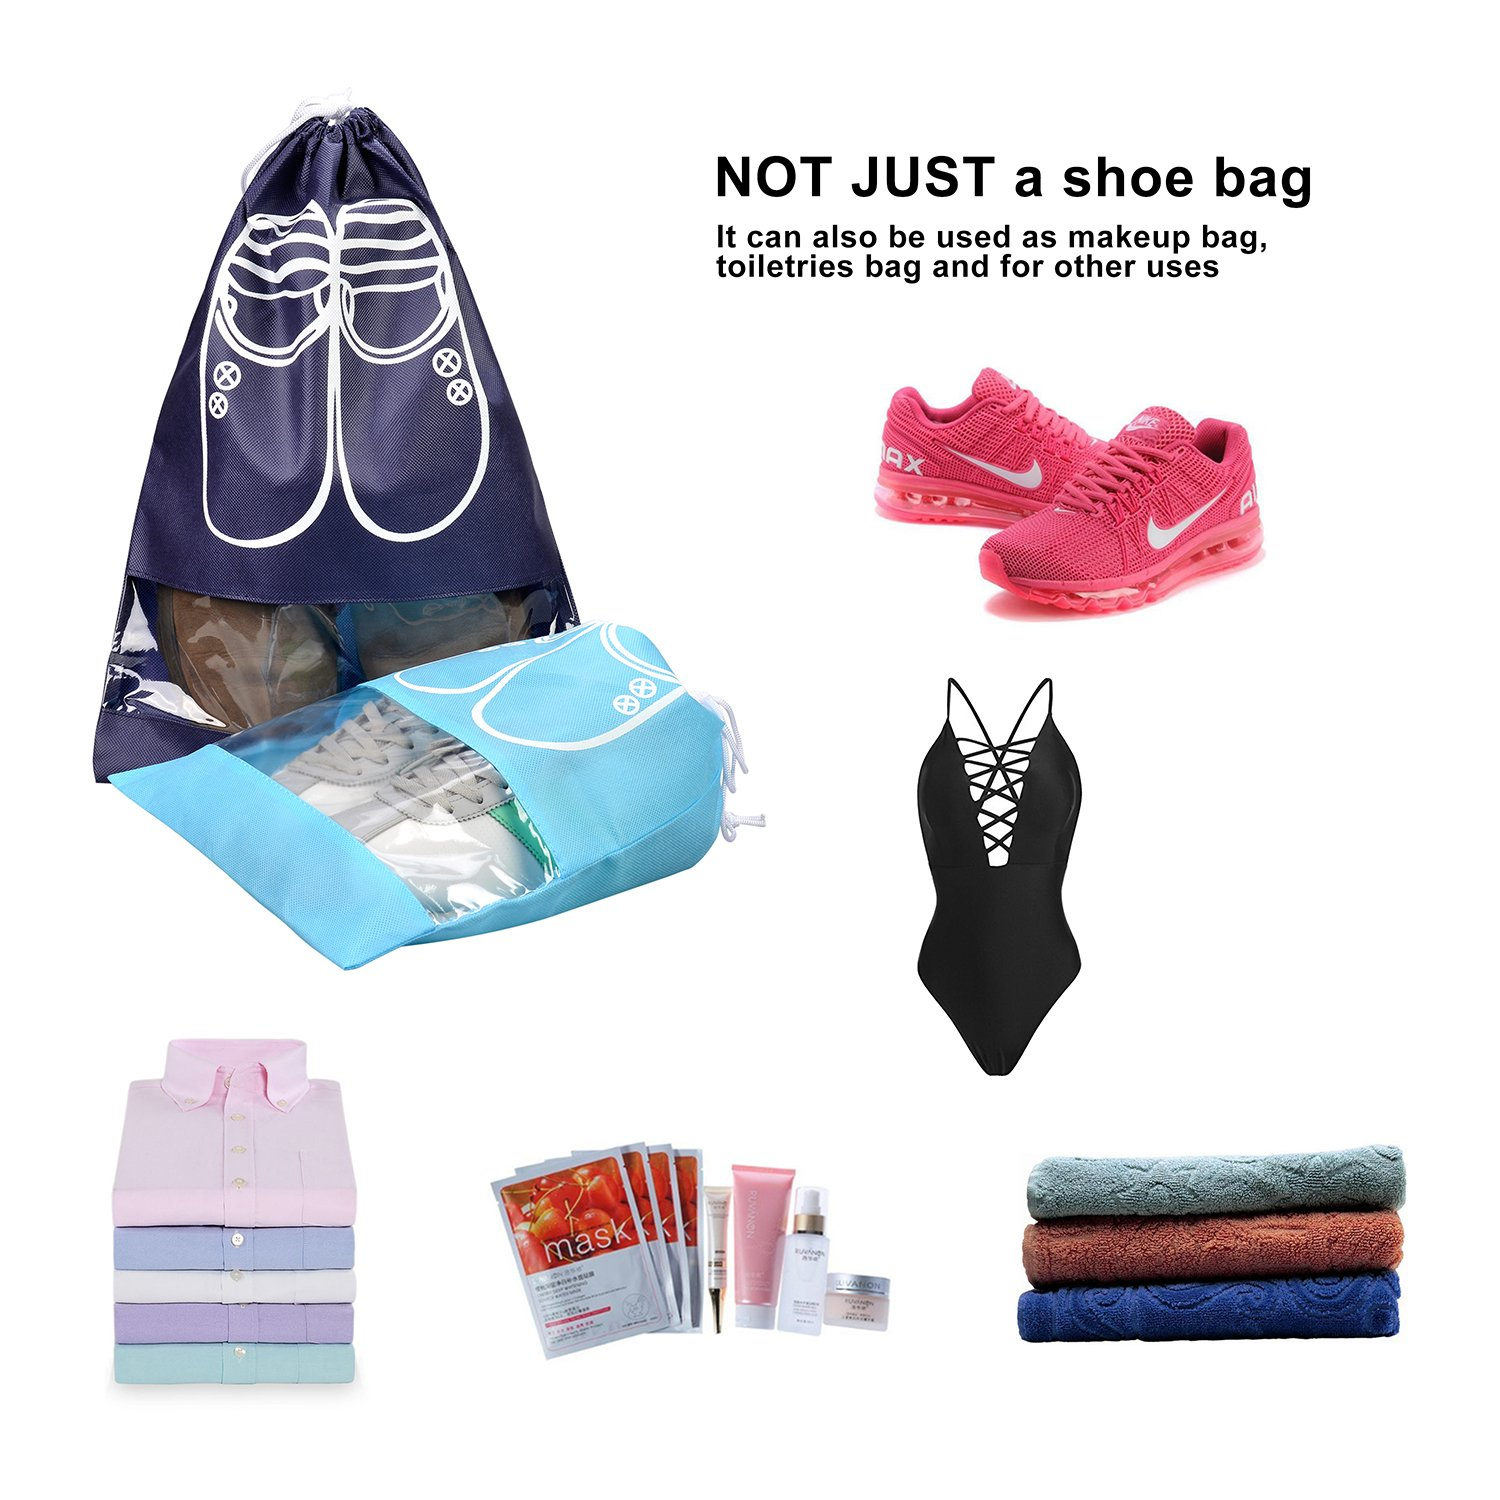 10 Pcs Travel Dust-proof Shoe Bags with Drawstring and Transparent Window Shoe Organizer Space Saving Storage Bags(5pcs XL and 5pcs L) by TGbranch (Image #8)